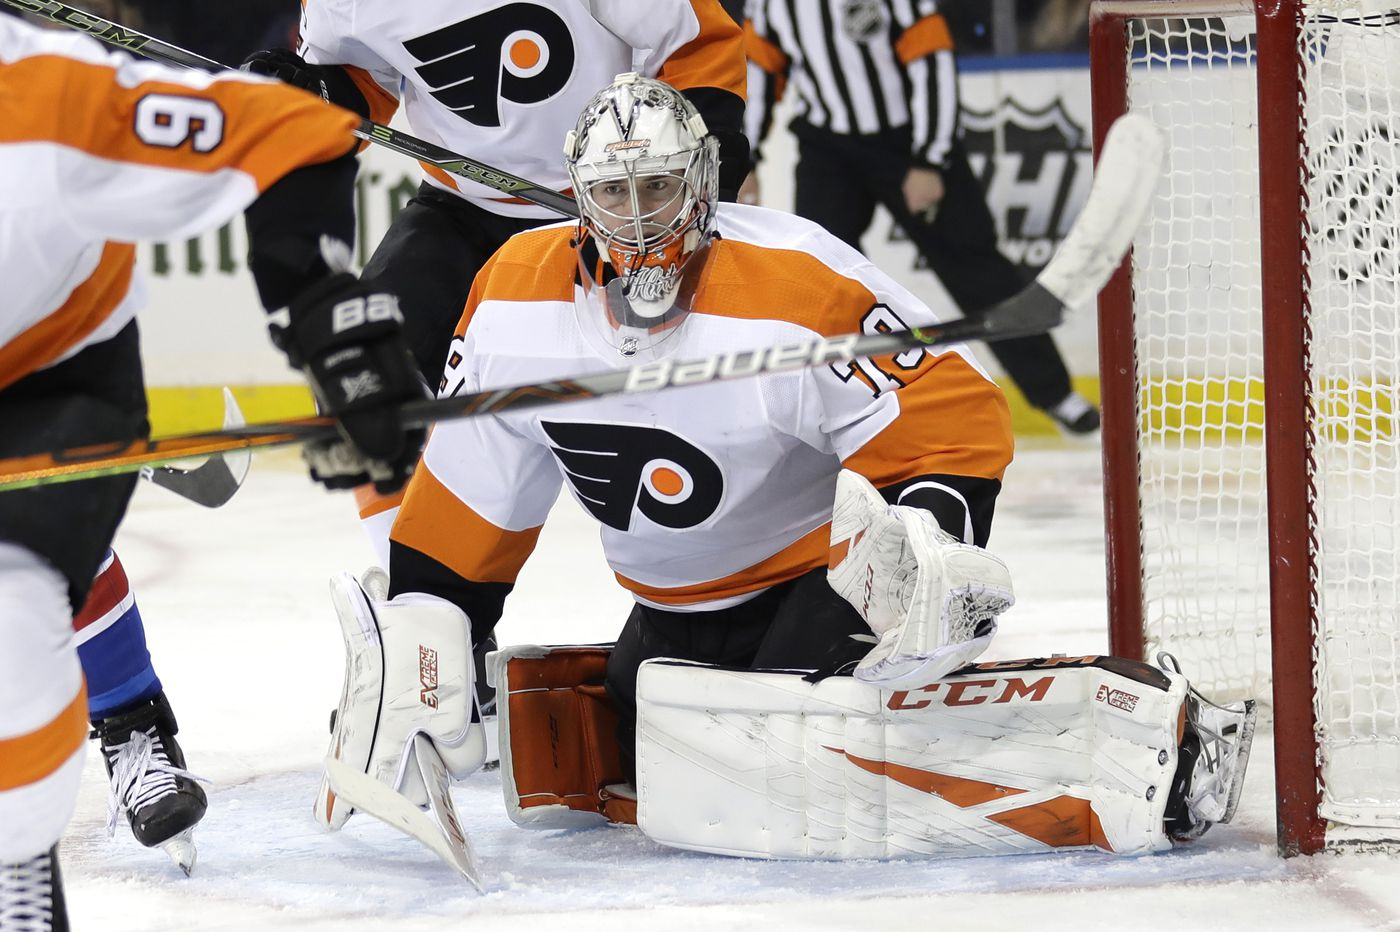 With Carter Hart, Flyers finally have an edge in net, even against Henrik Lundqvist | Mike Sielski